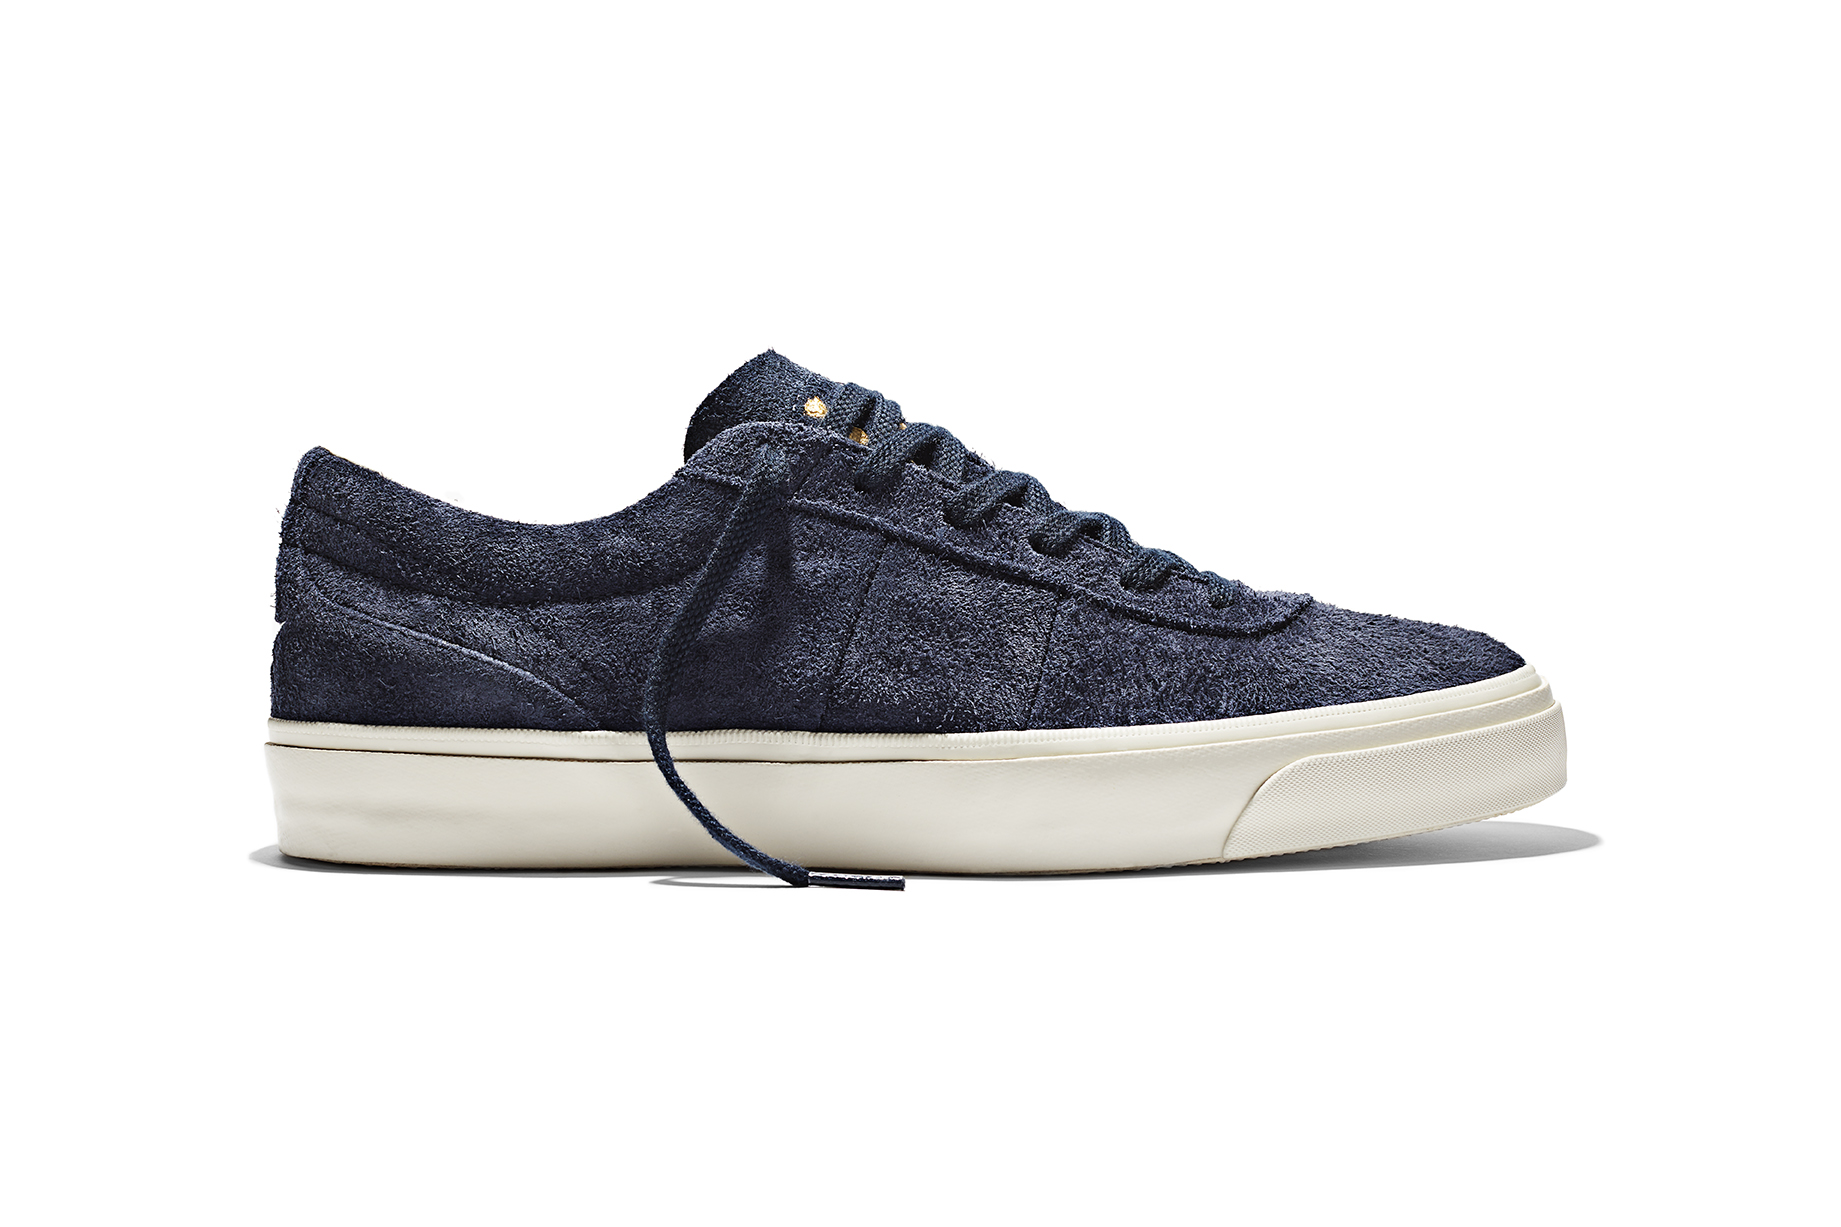 SS17_One_Star_CC_Pro_155625C_Navy_LATERAL_155625C.jpg